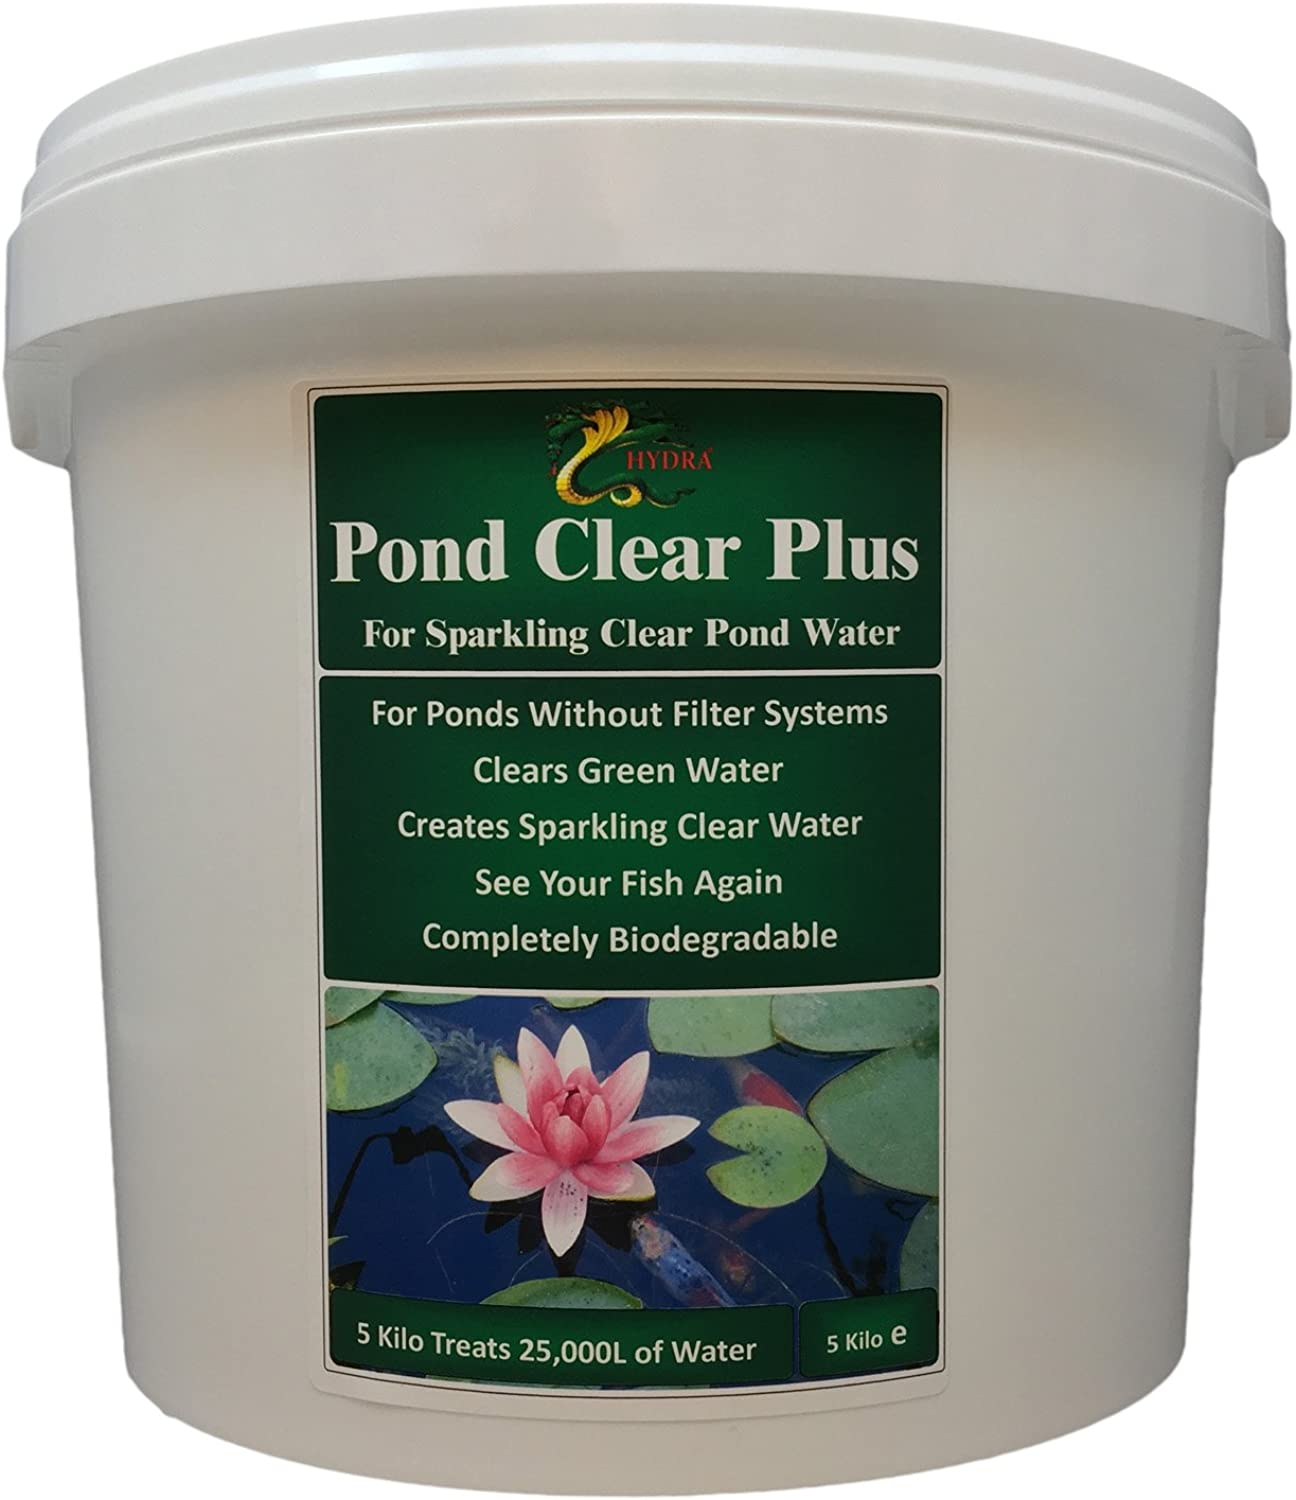 HYDRA POND CLEAR PLUS 5KG Clear Green Water in Ponds without External Filter, Treatment Dilution 1 10,000